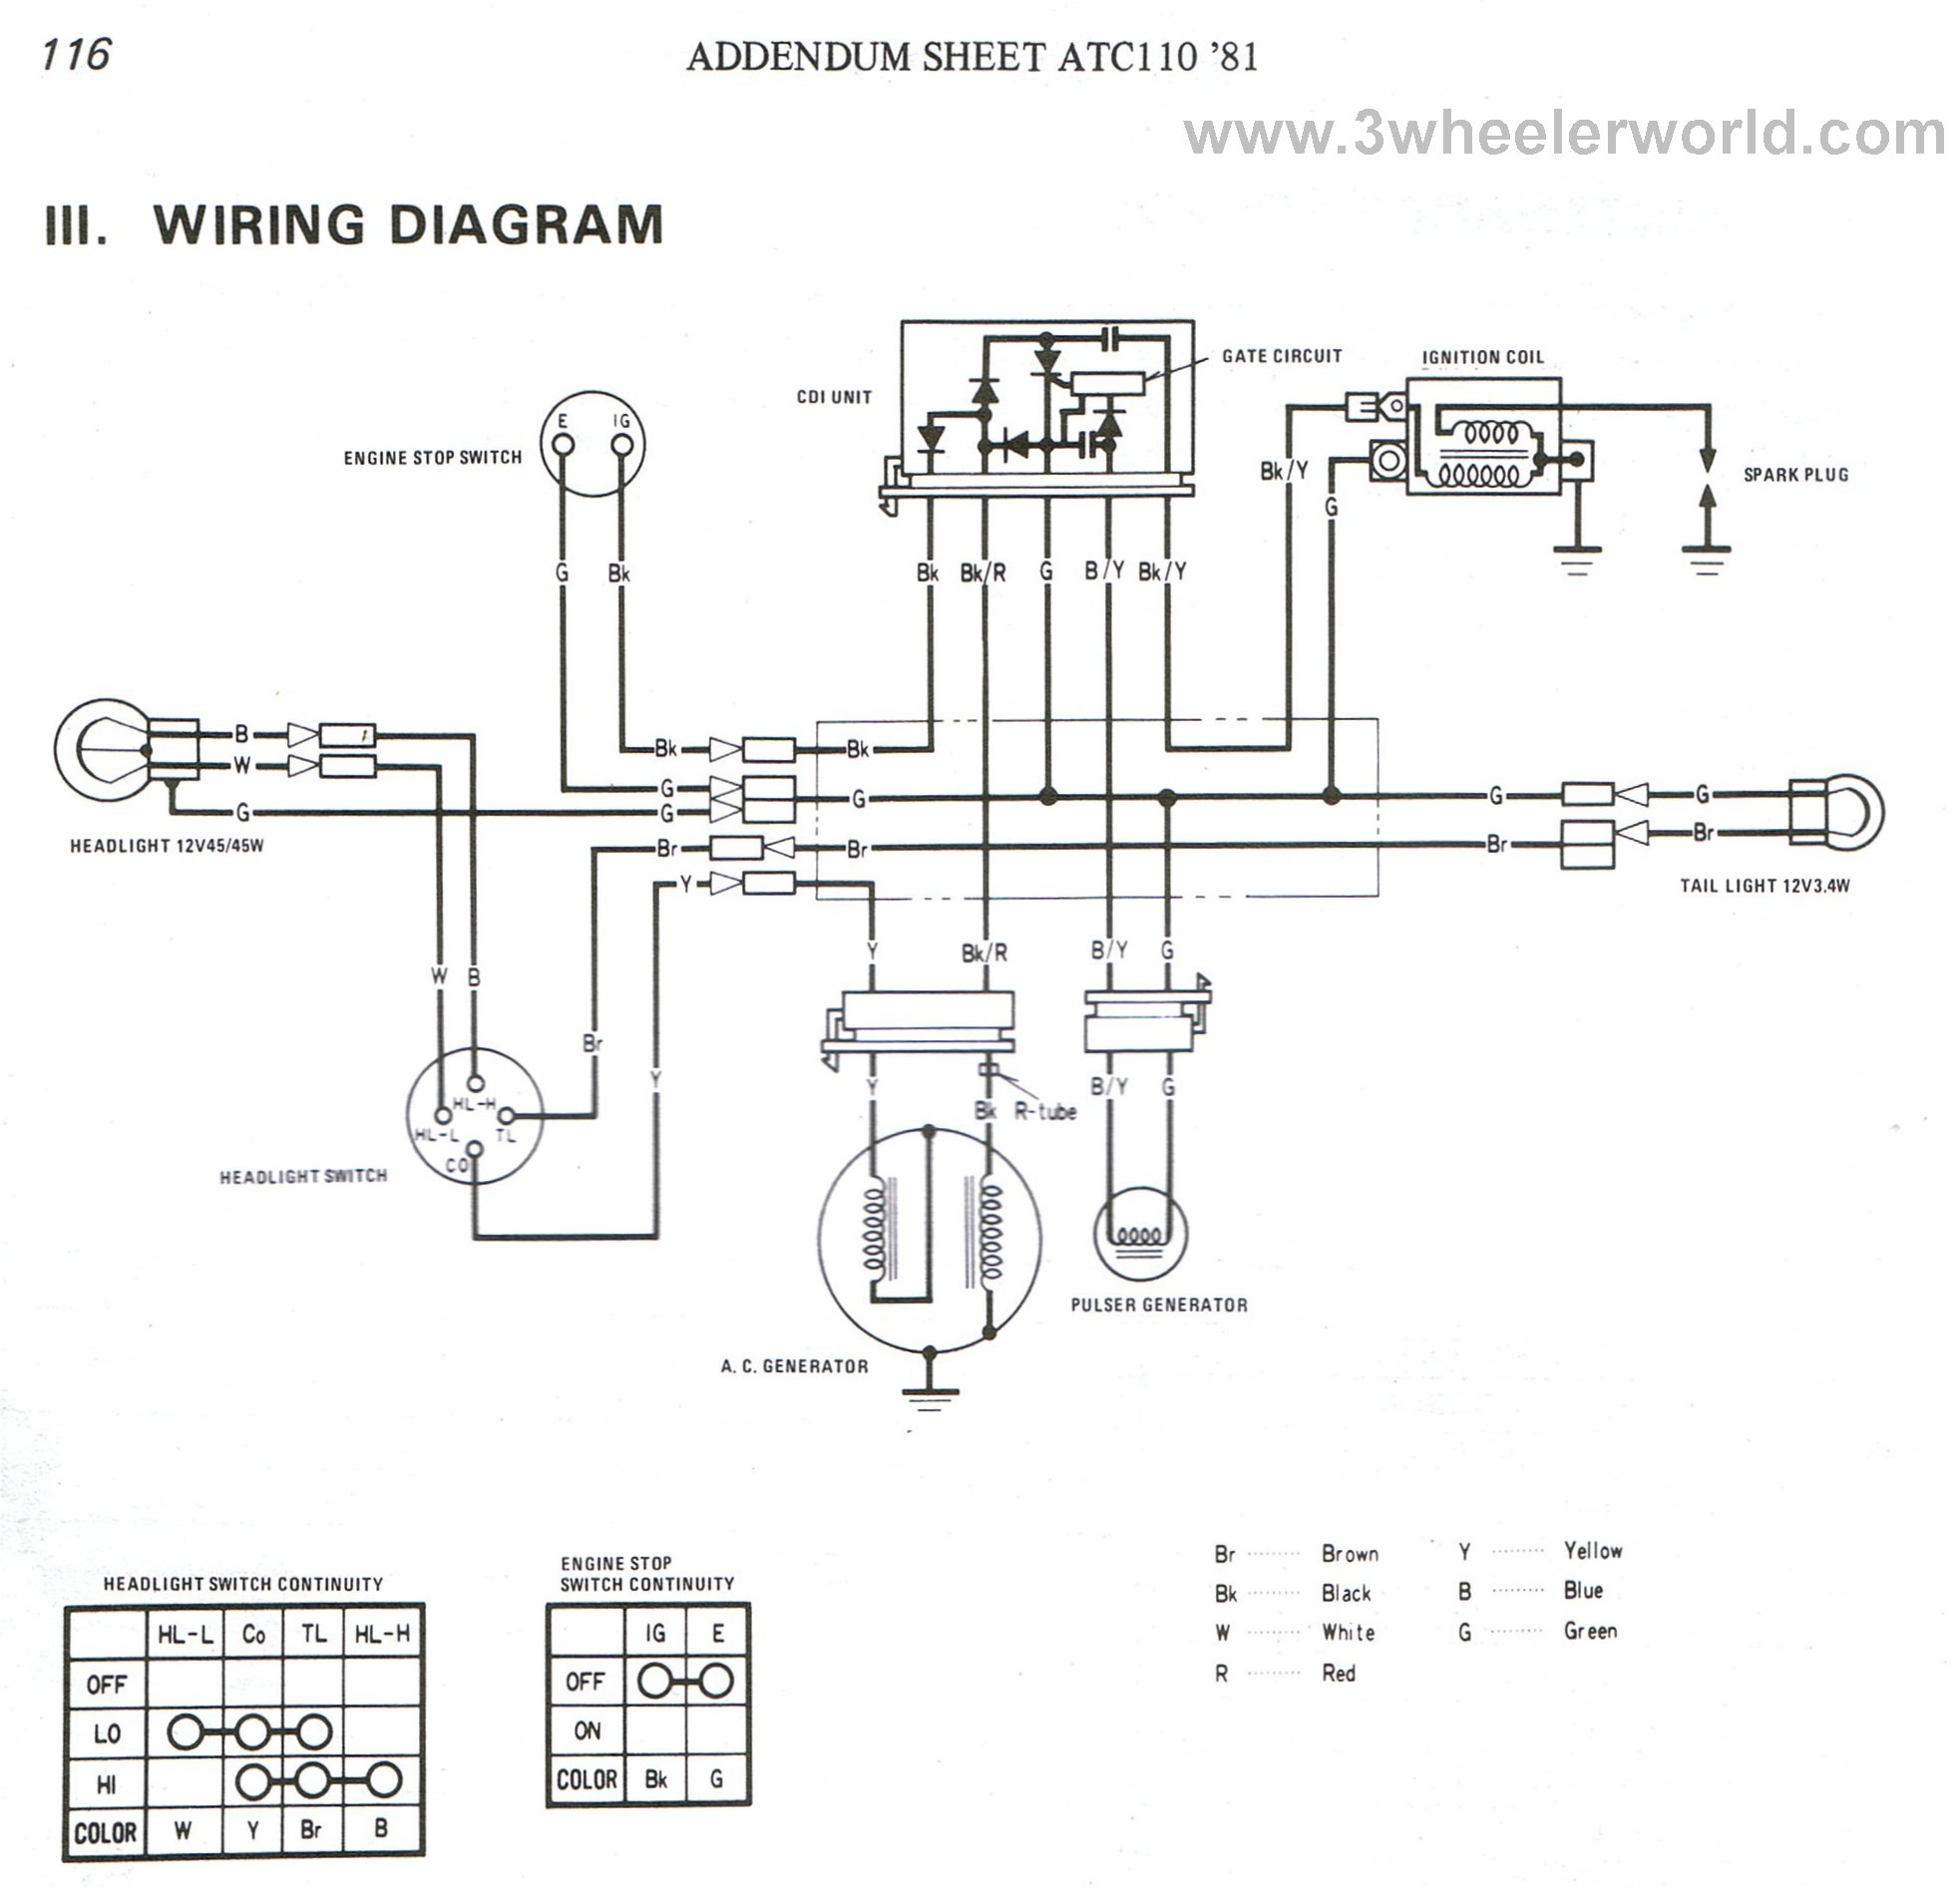 110 Dirt Bike Wiring Diagrams 3 Wheeler World Tech Help Honda Wiring Diagrams